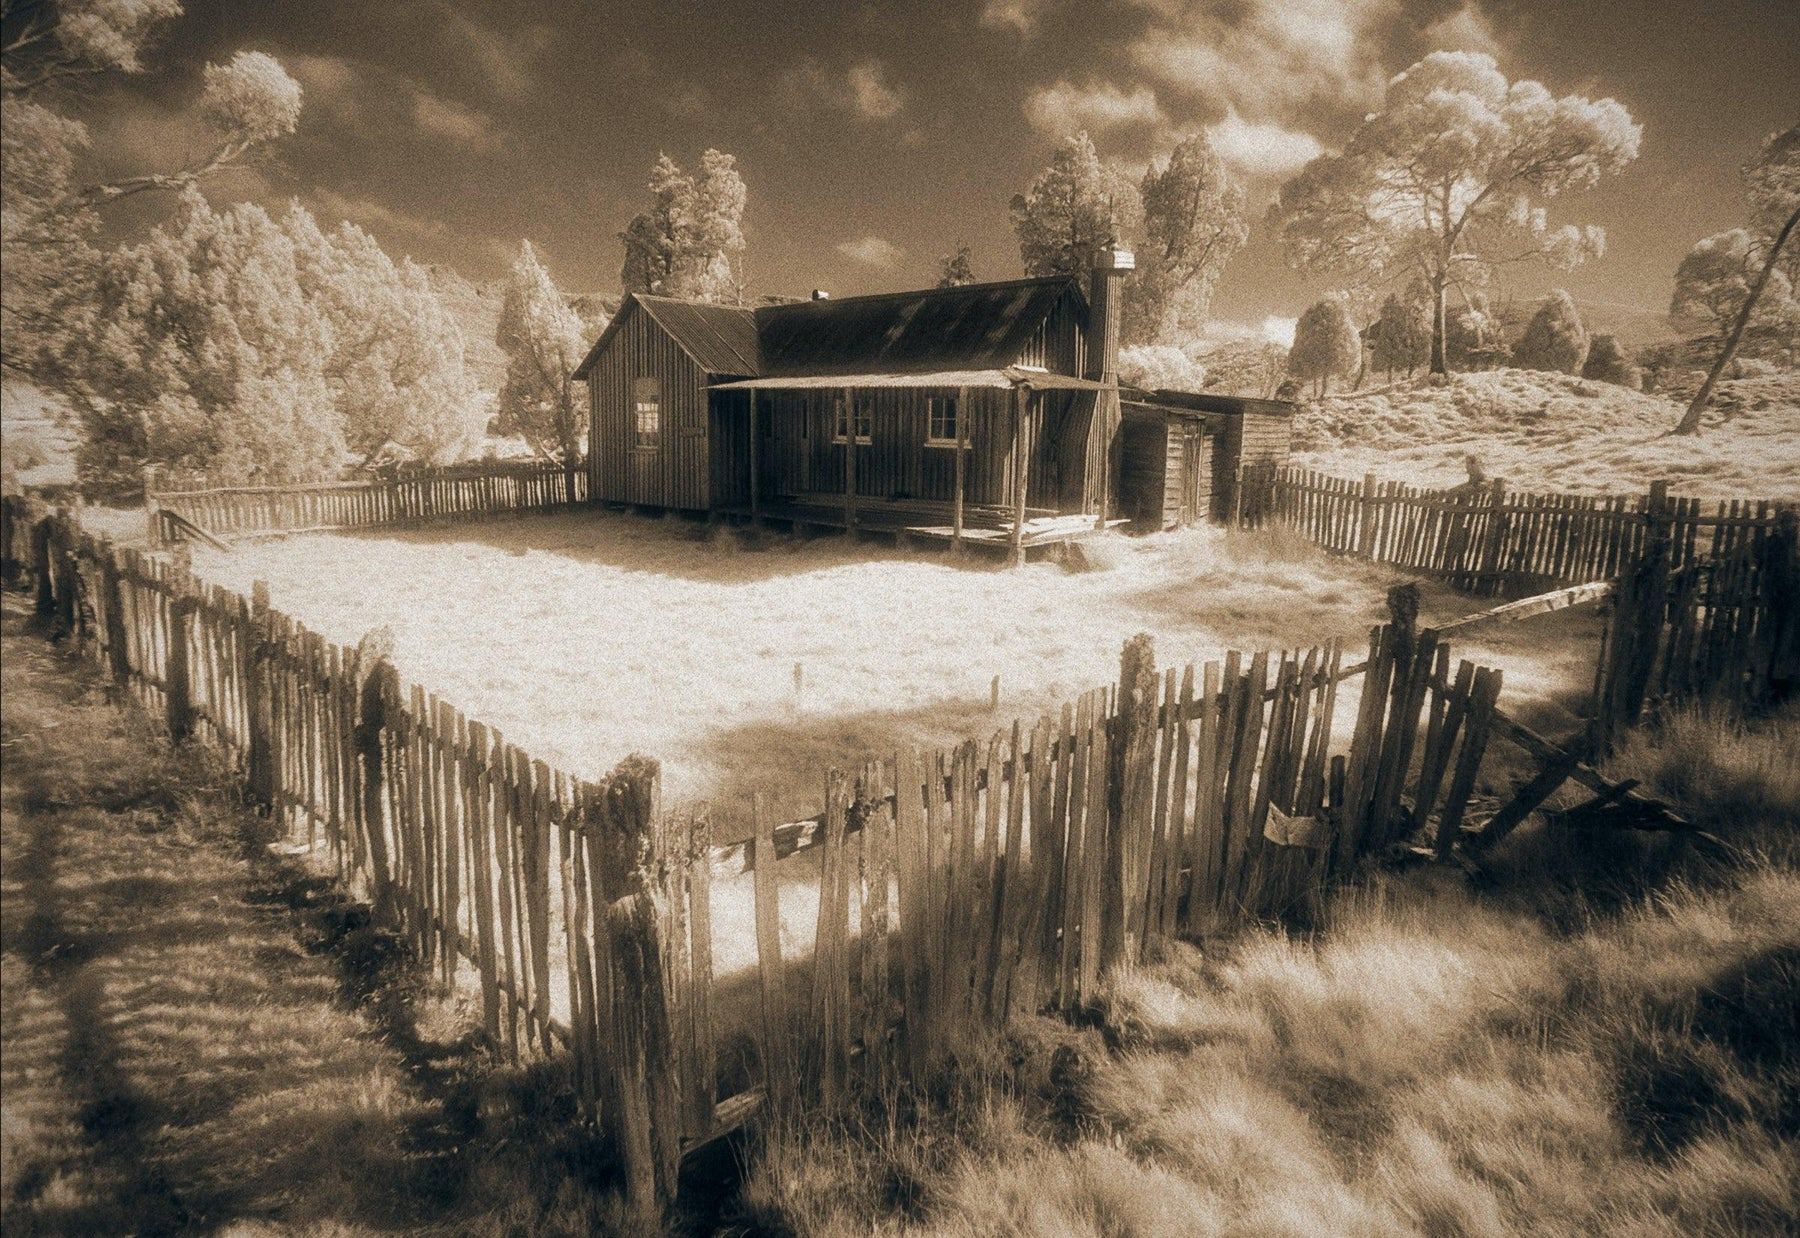 Old house in the valley of Cradle Mountain Australia surrounded by trees and a picket fence in a sepia color tone